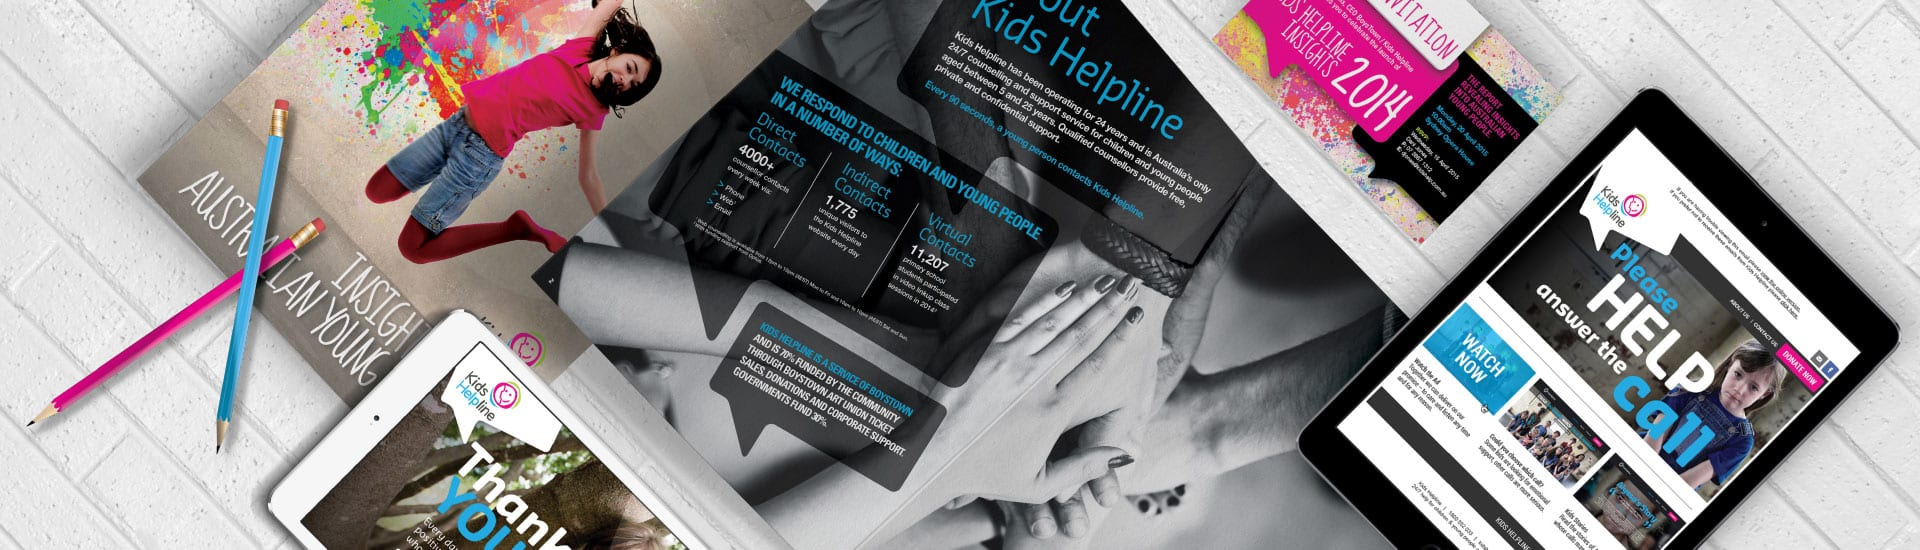 Kids Helpline Graphic Design